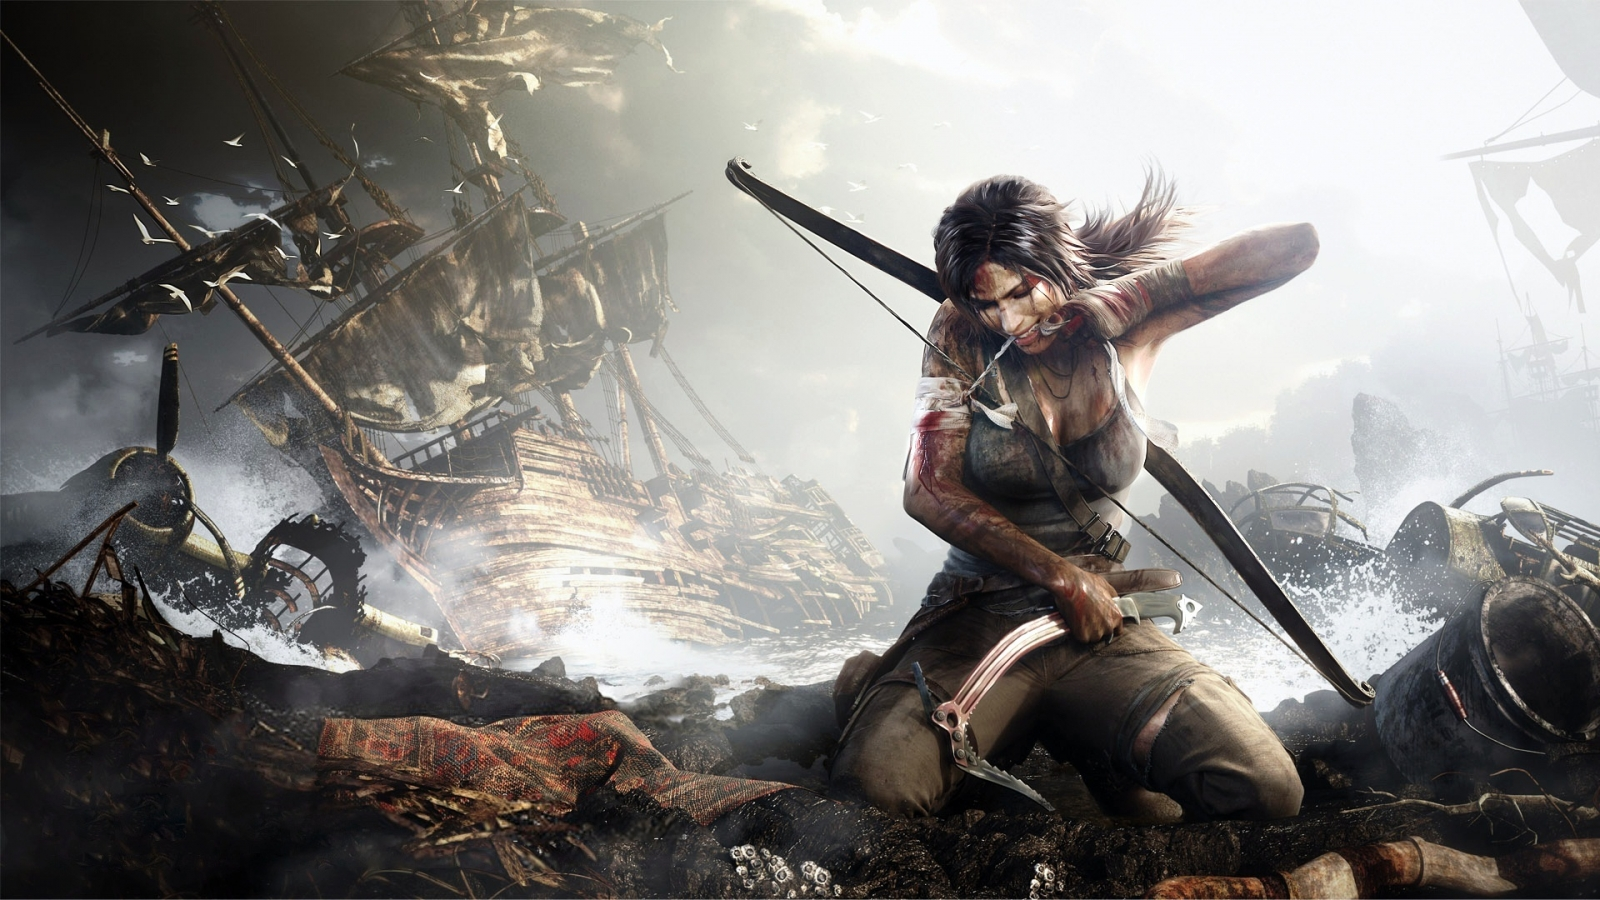 Tomb Raider Flash Sale For $29.99 This Weekend